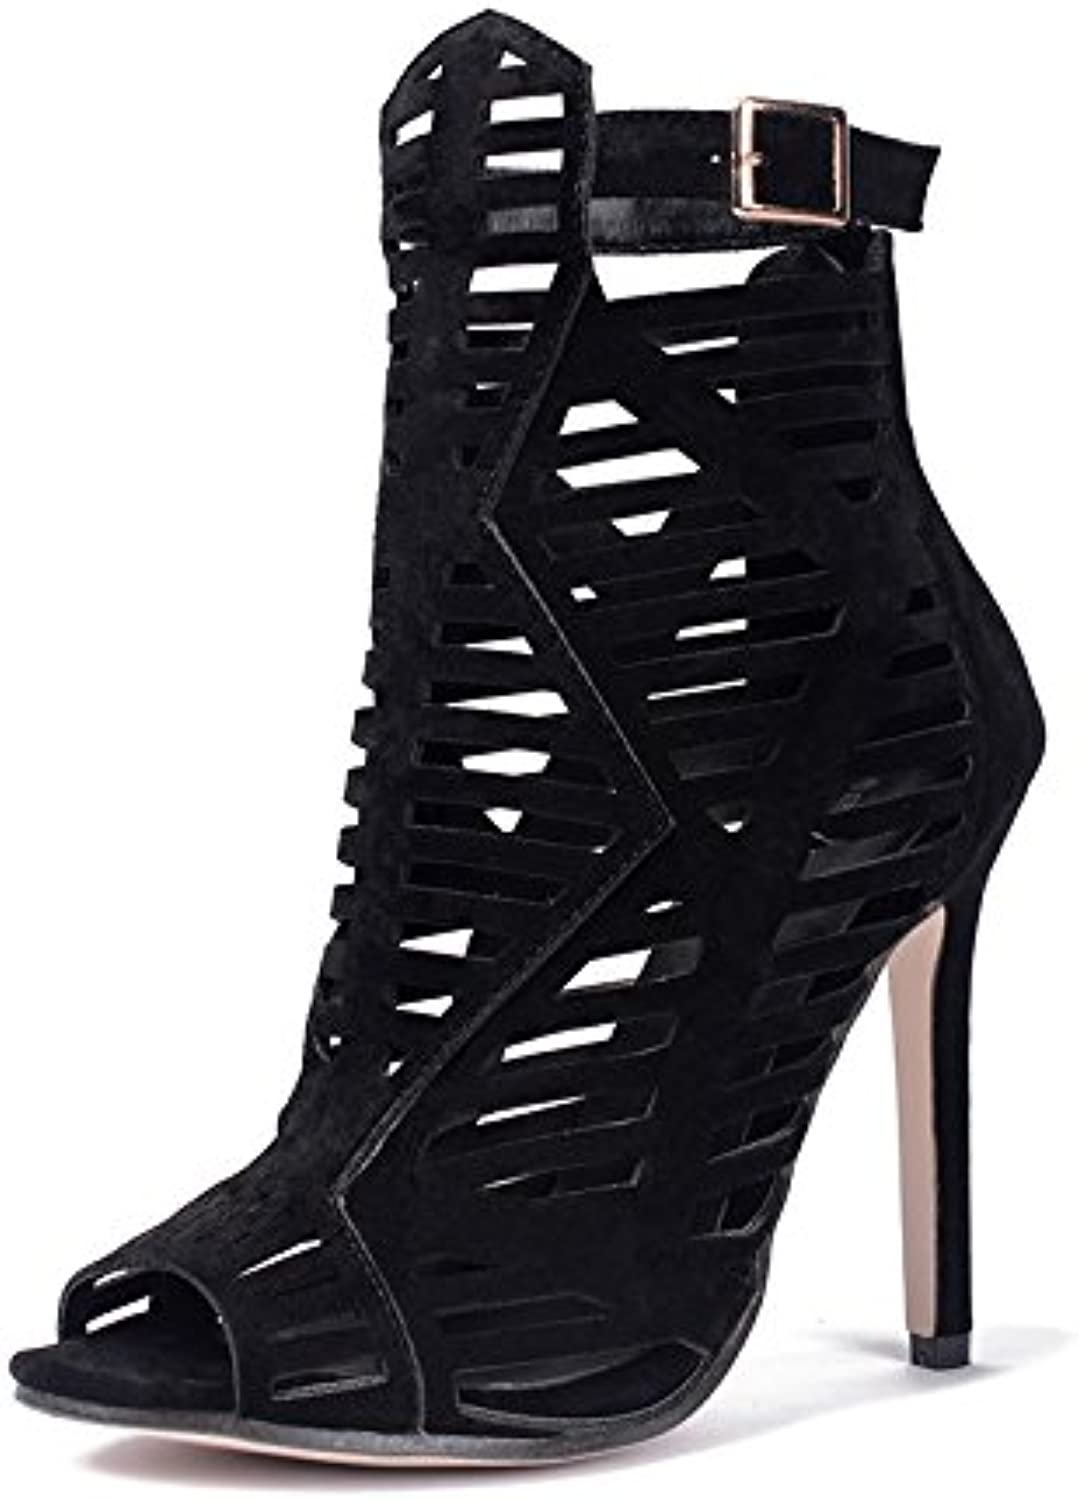 Women's spring new high heels exposed fine with roman shoes slotted tie fish mouth sandals